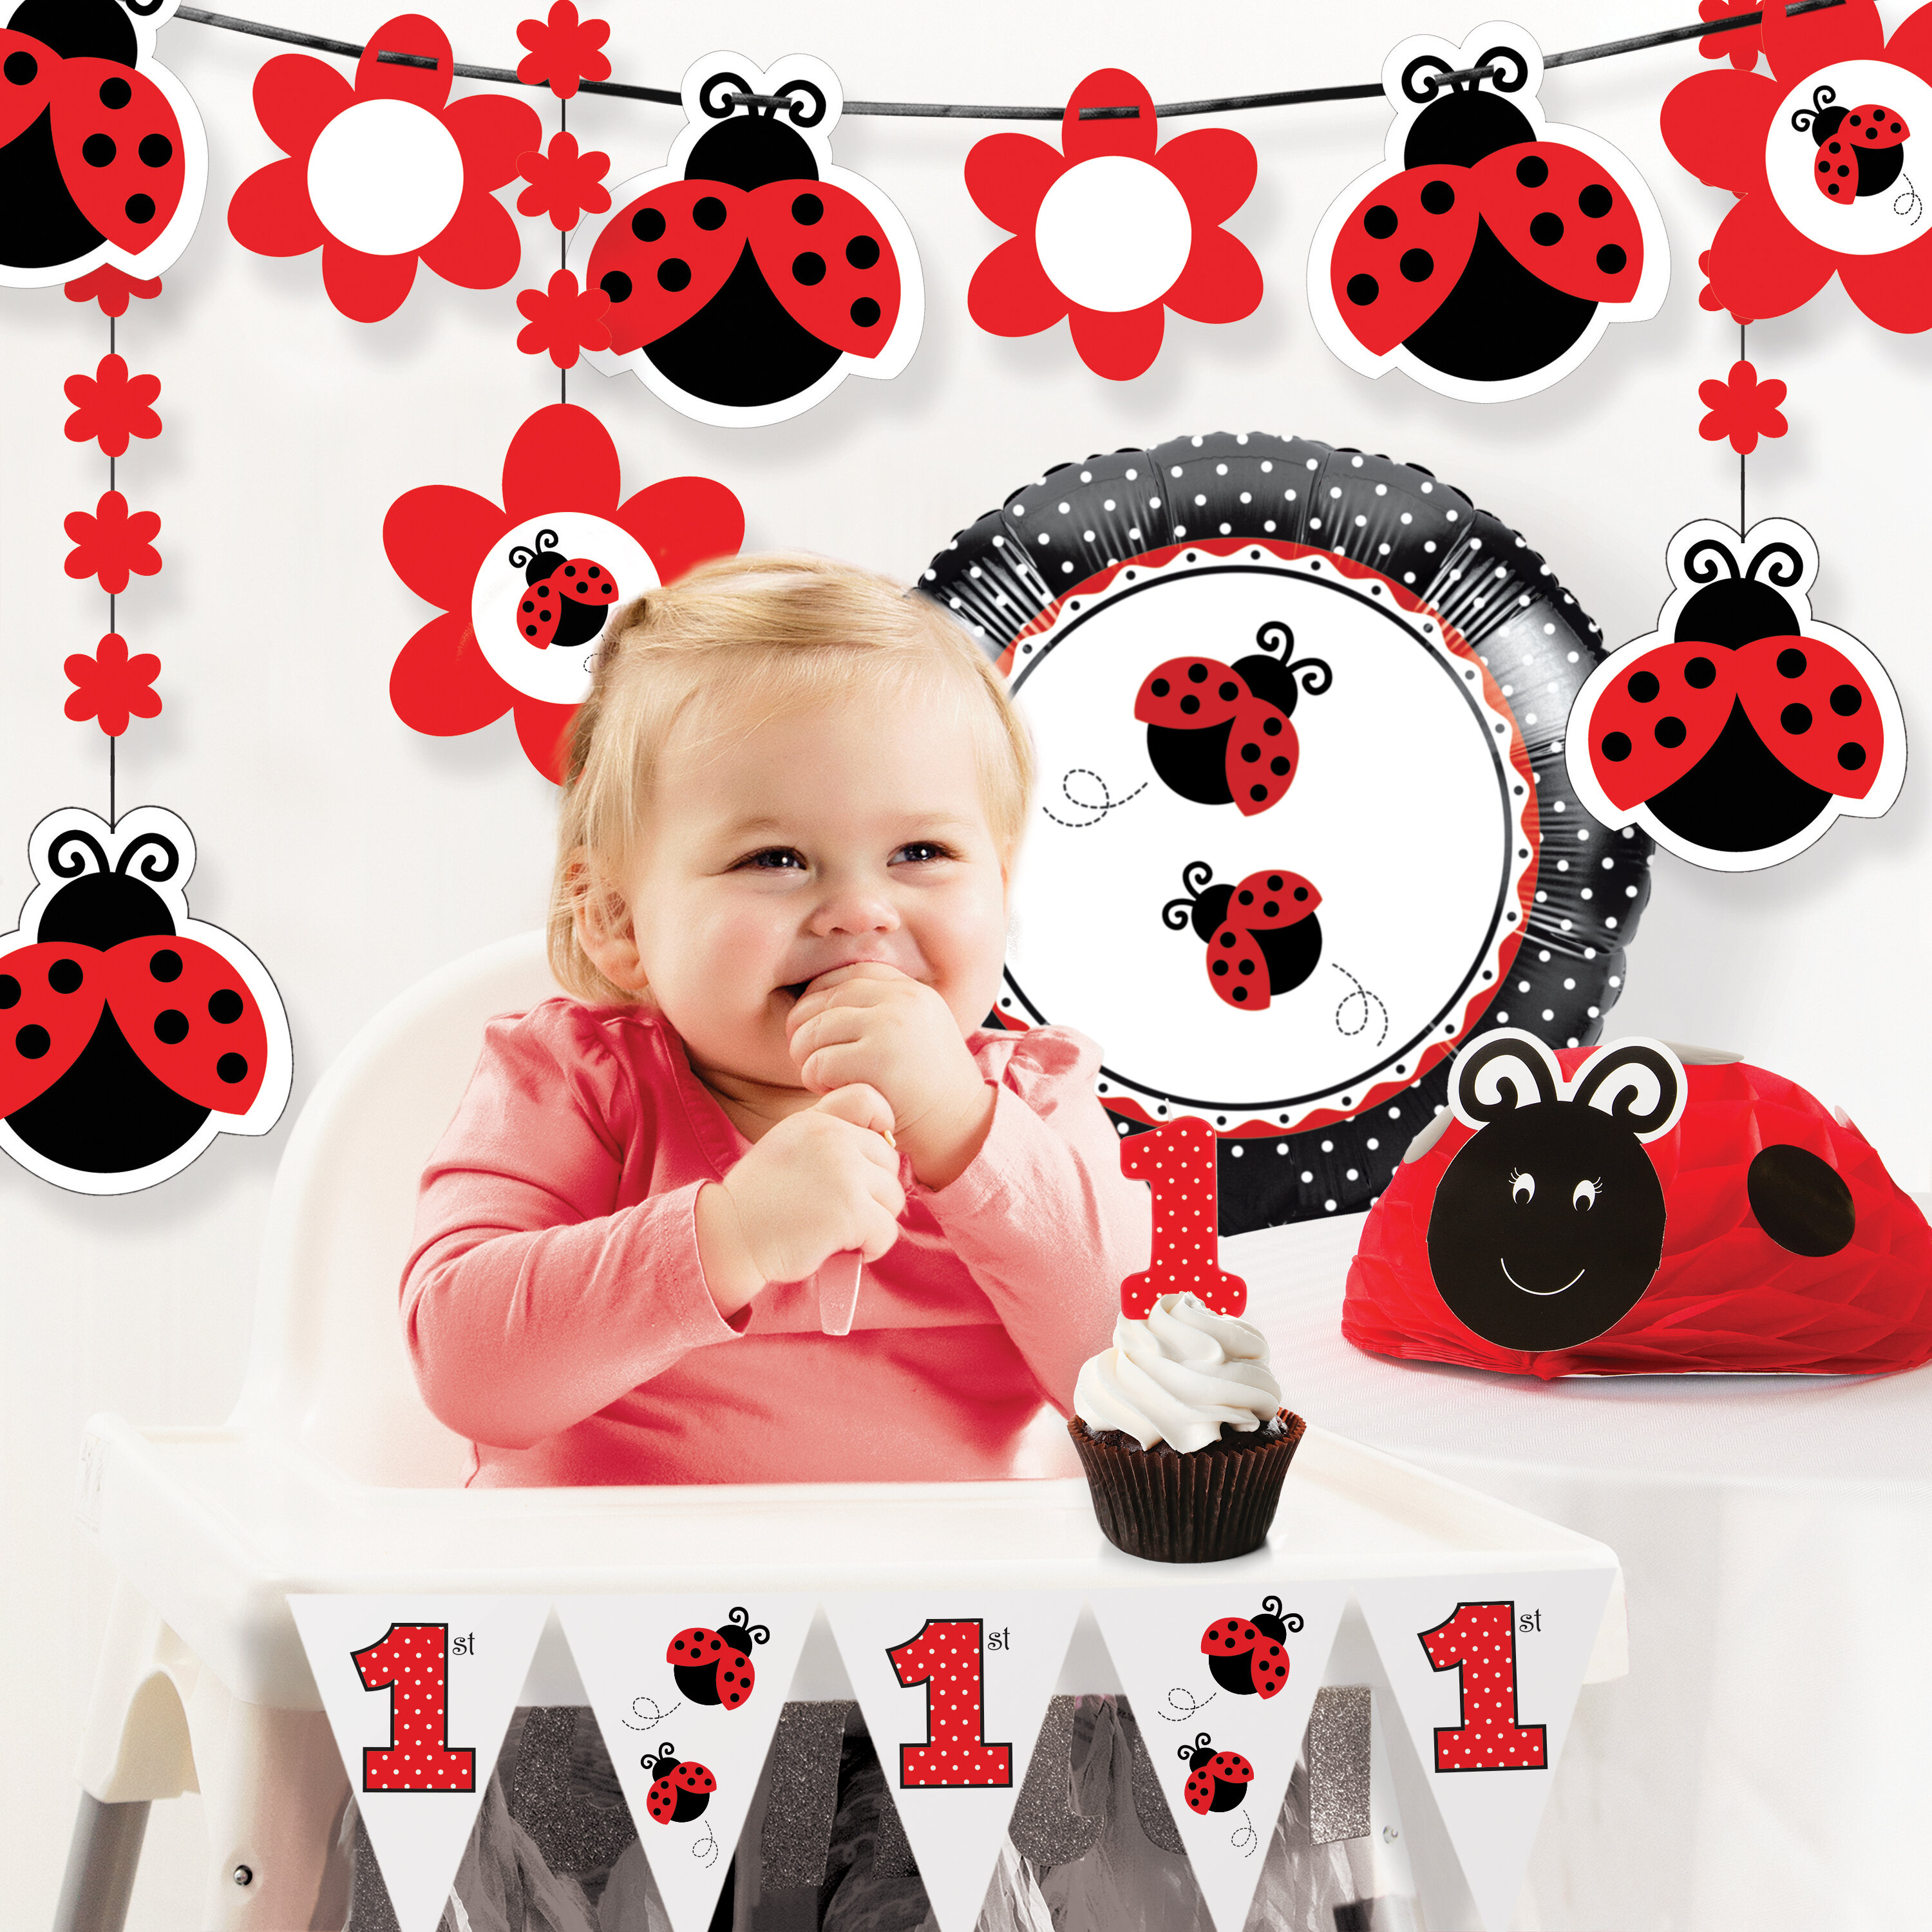 The Party Aisle Ladybug Fancy First Birthday Decoration Kit